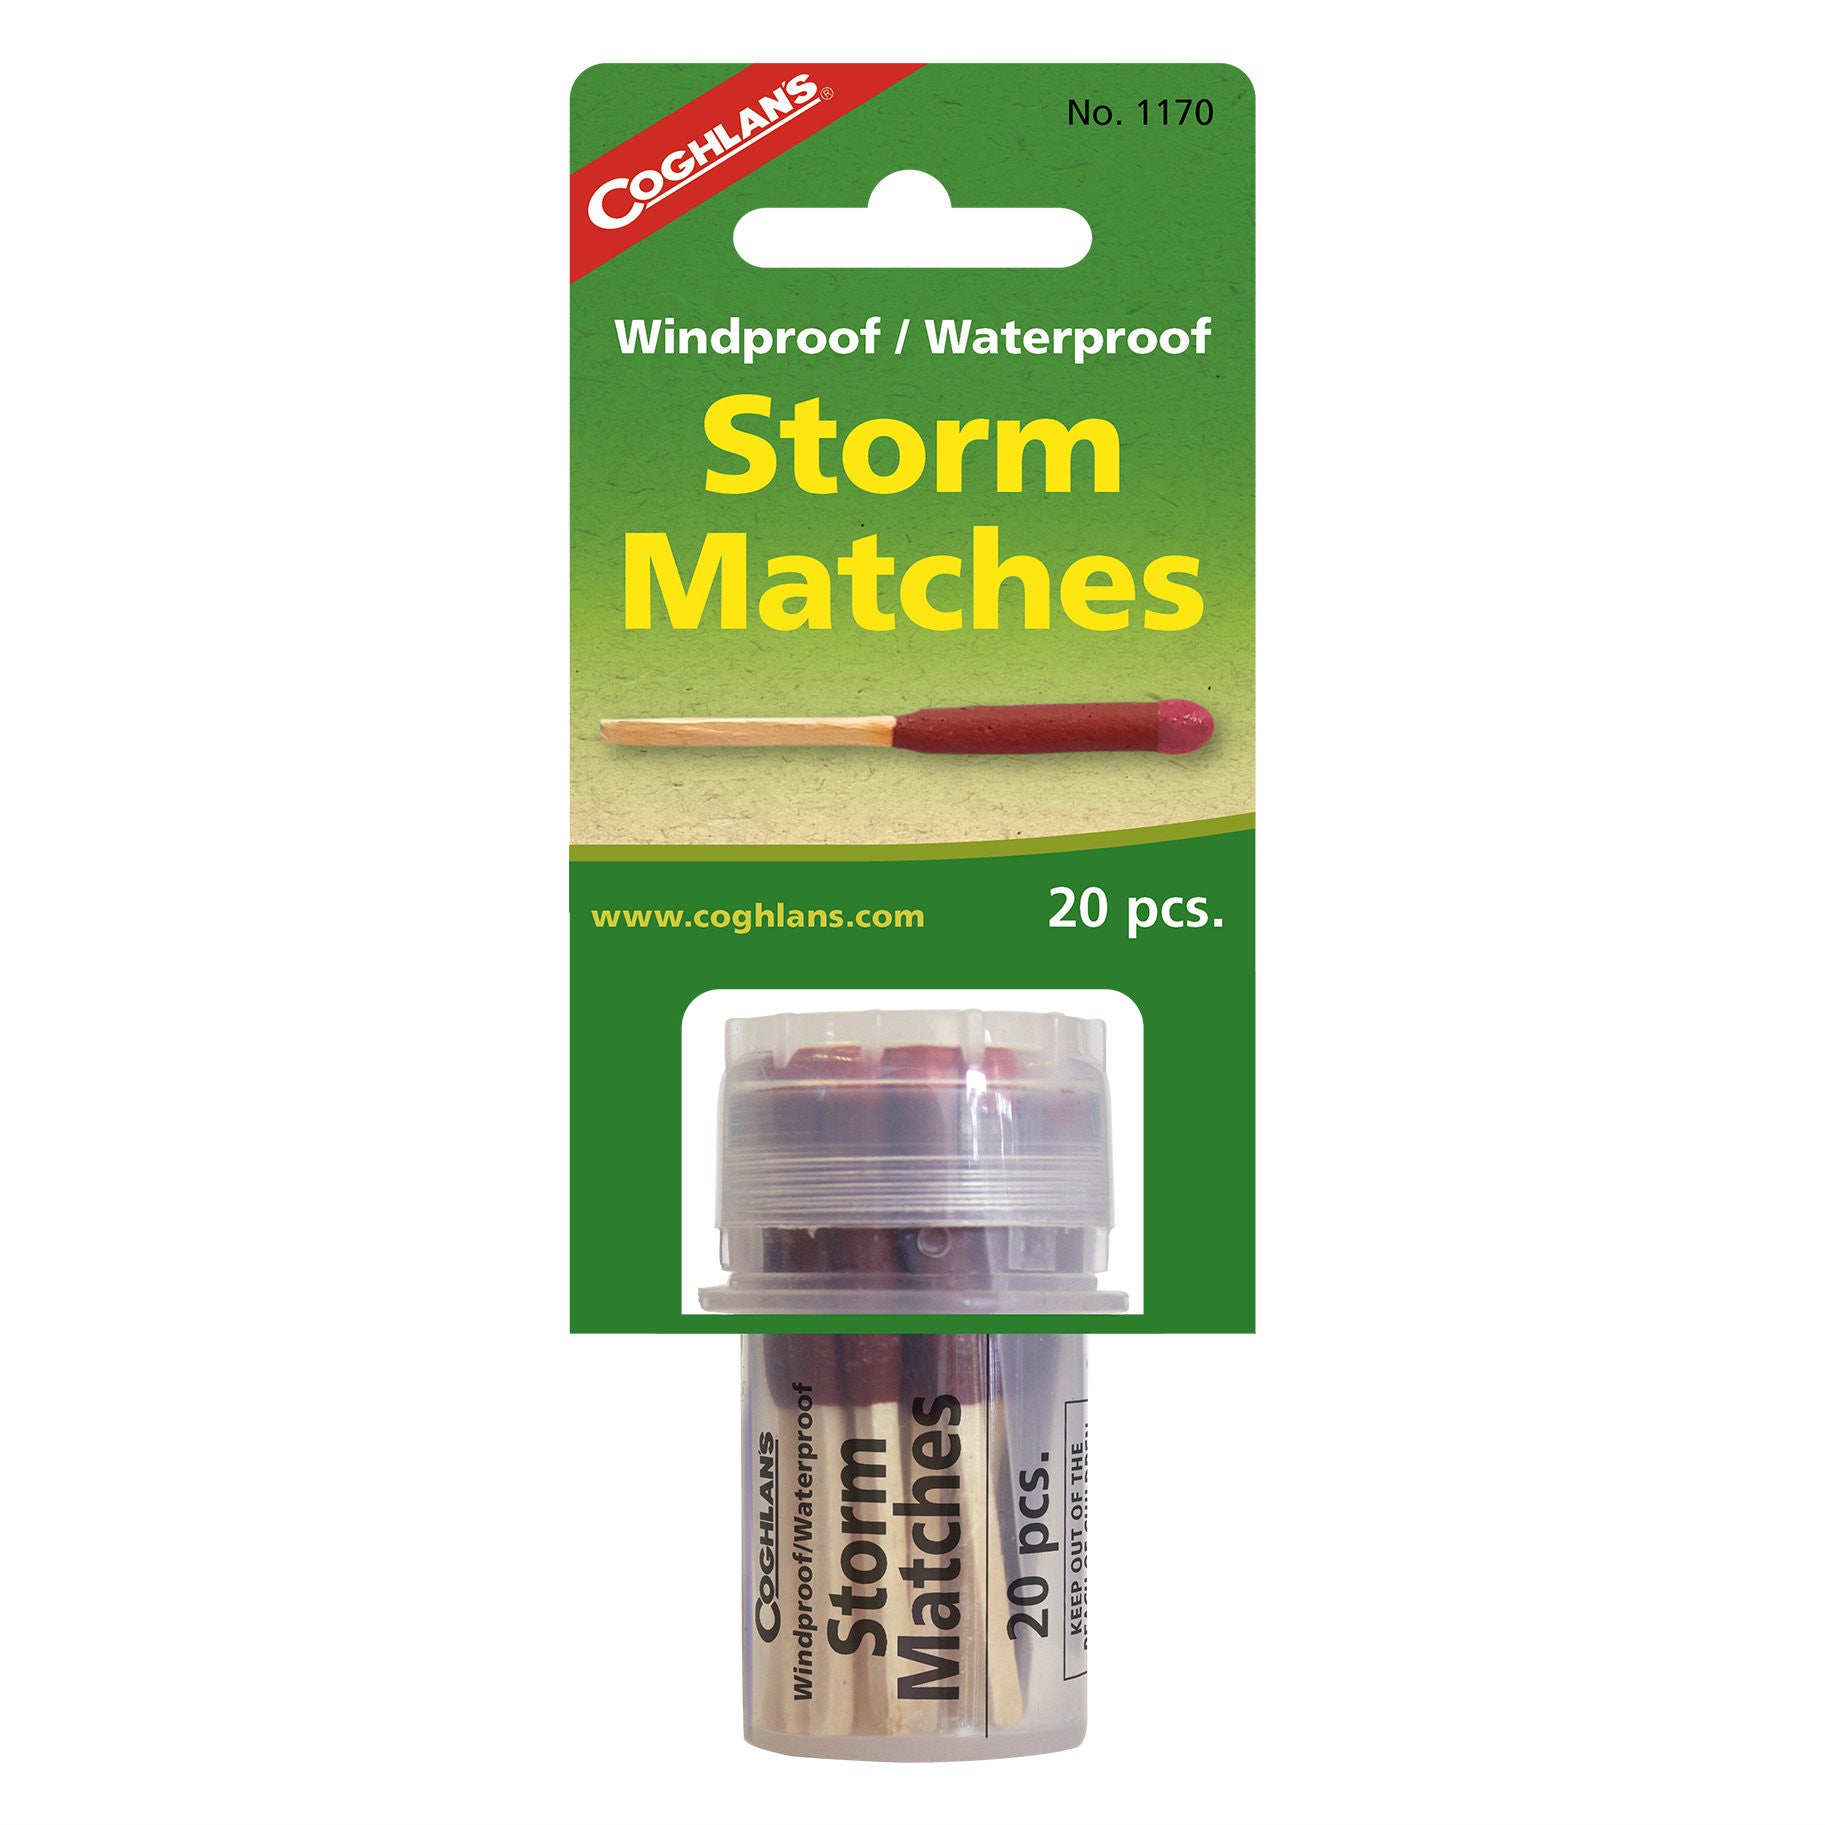 Coghlan's Wind / Waterproof Storm Matches